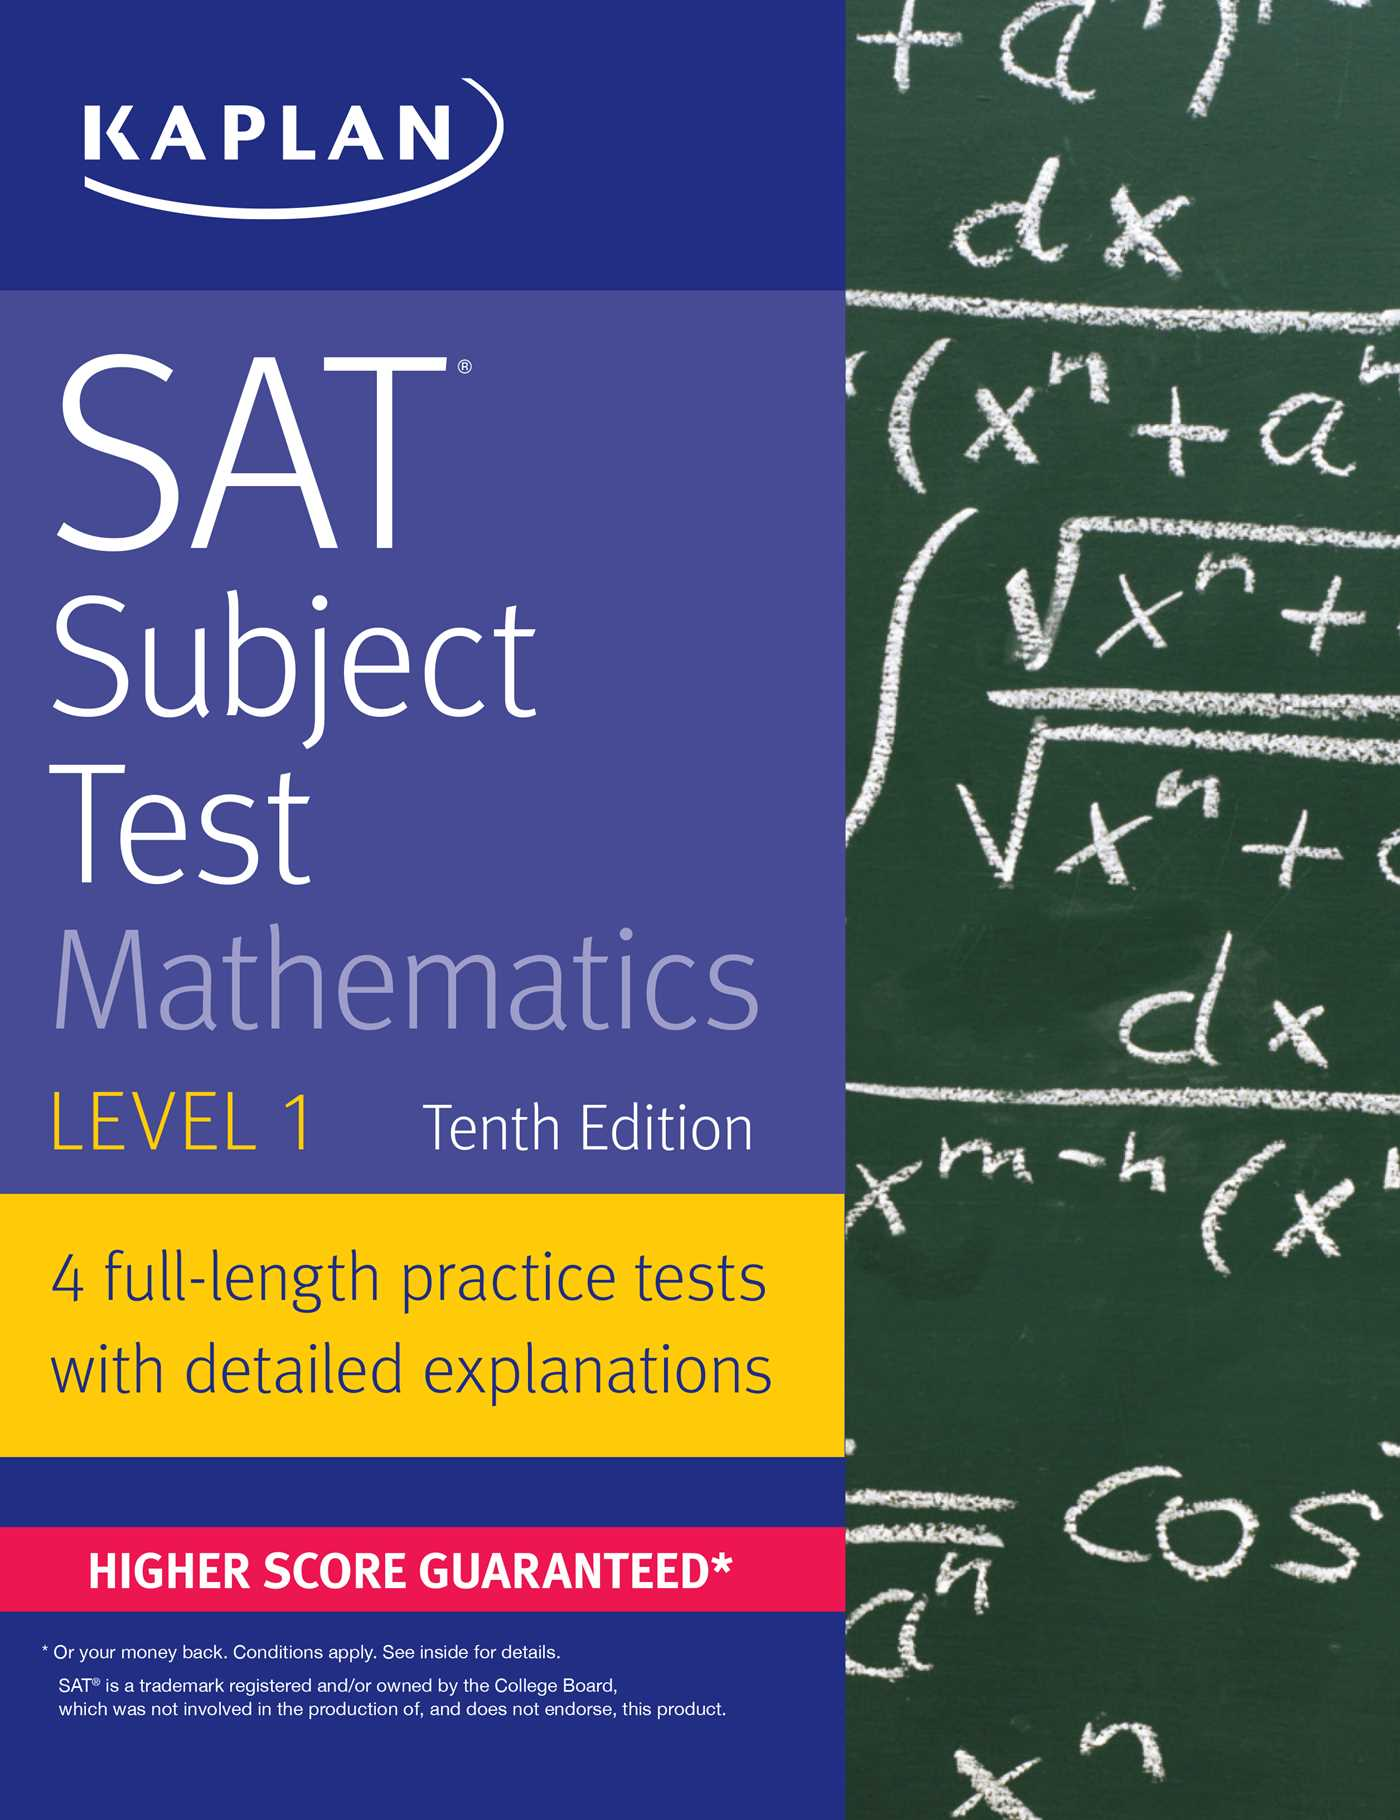 SAT Subject Test Mathematics Level 1 | Book by Kaplan, Kaplan Test ...